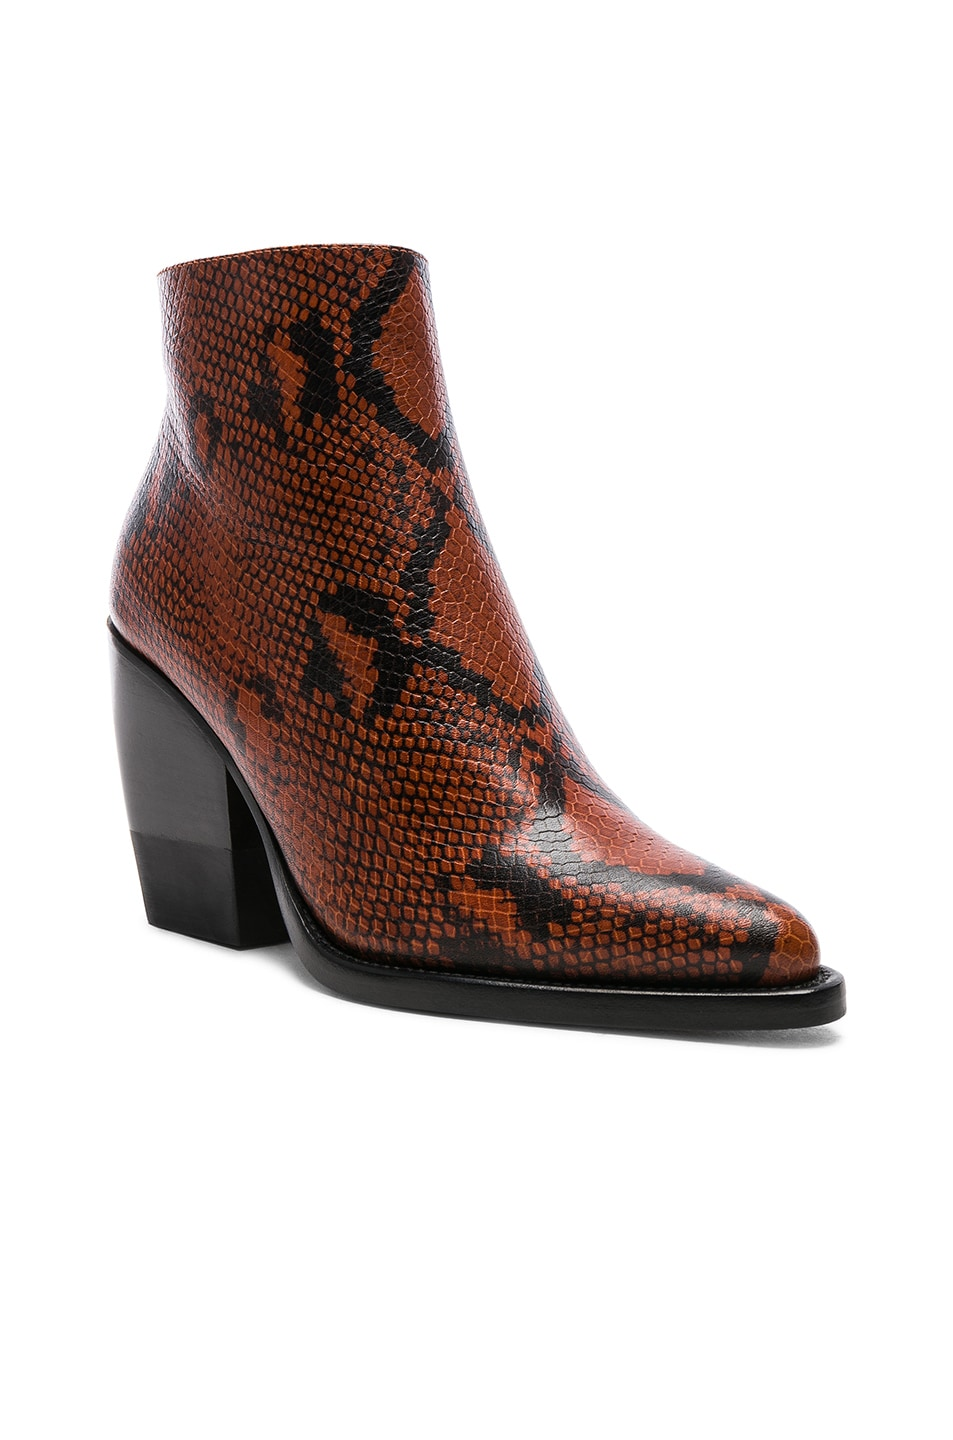 Image 2 of Chloe Python Rylee Print Leather Ankle Boots in Brown